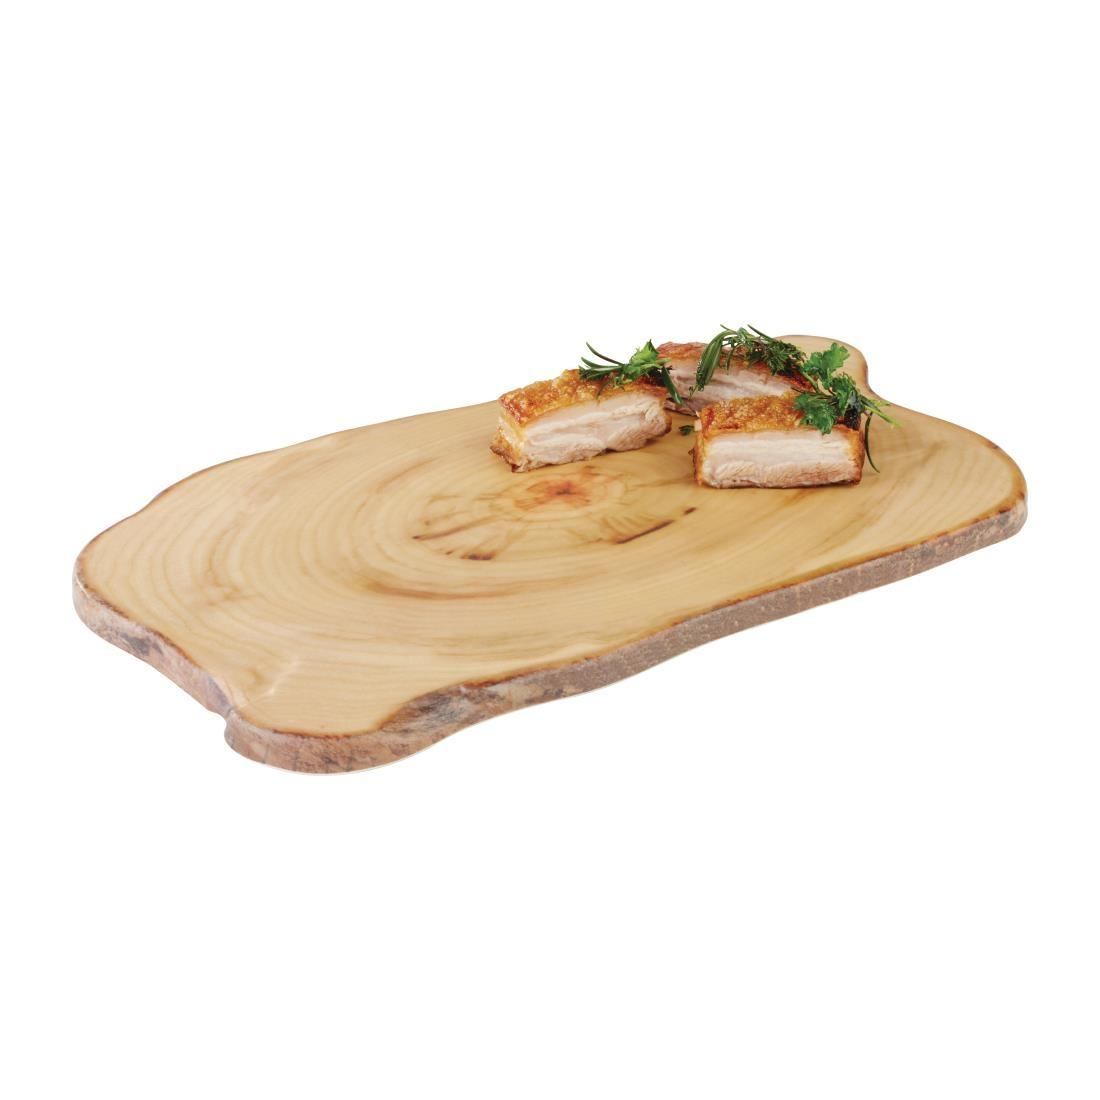 CS098 - APS Timber Rectangular Melamine Platter 440 x 250mm - Each - CS098